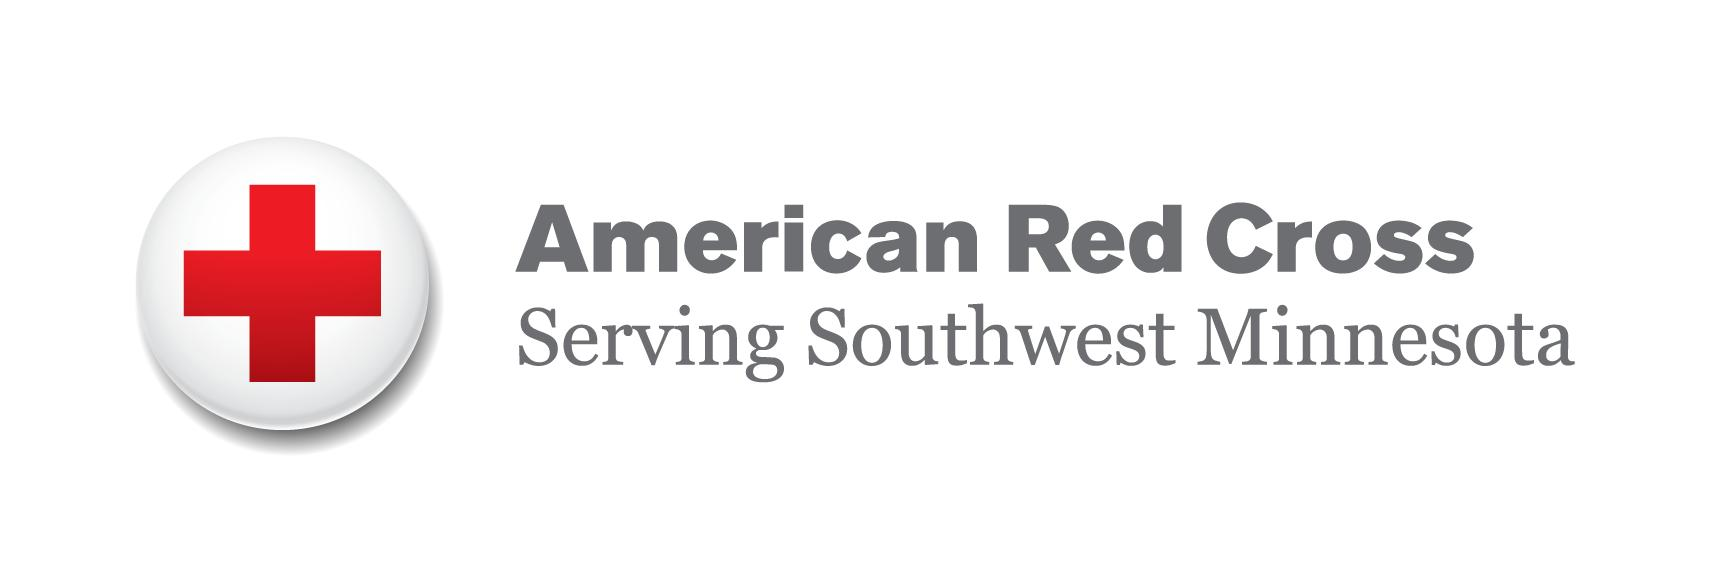 American Red Cross Serving Southwest Minnesota